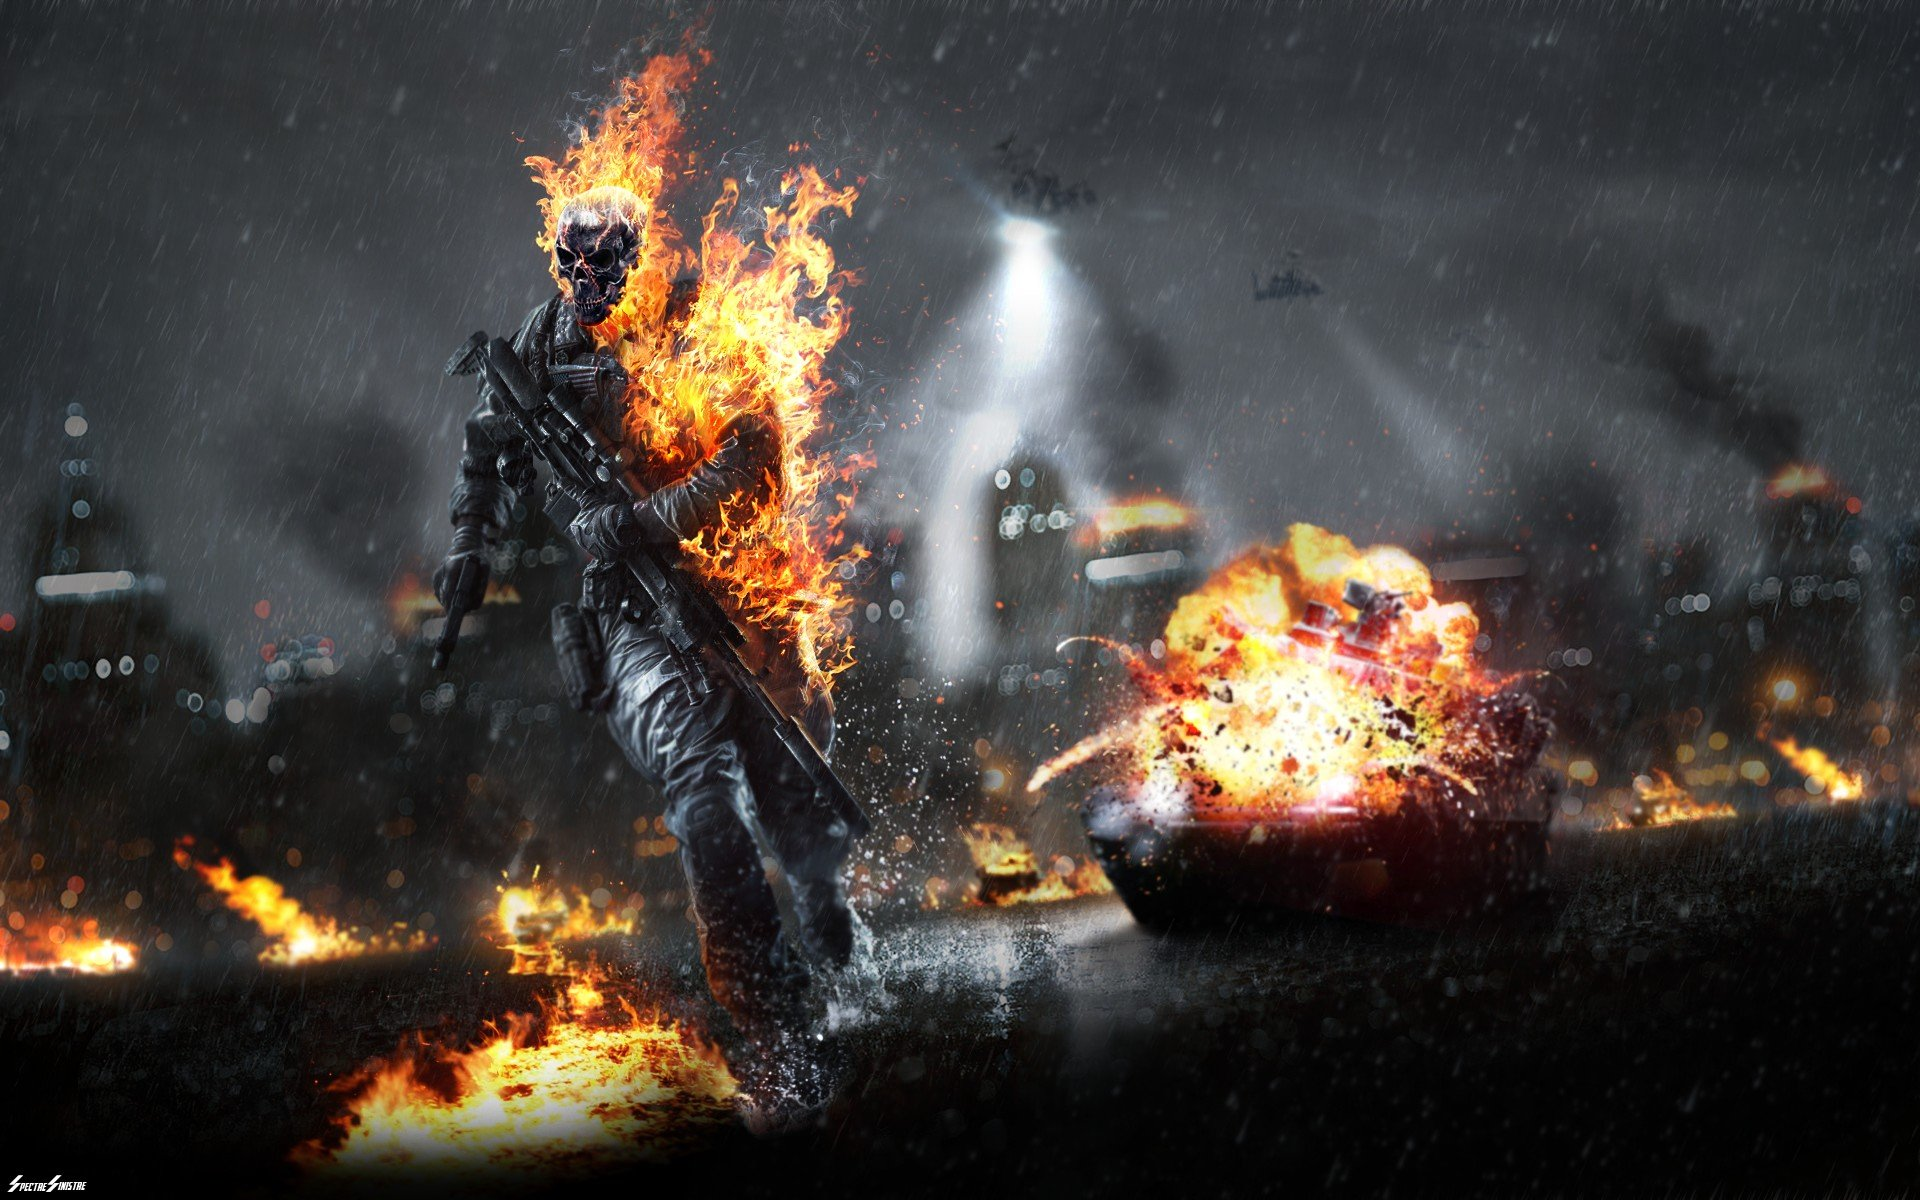 Cool Battlefield 4 Fire Armor In Black Background: Fire, Fire Man HD Wallpapers / Desktop And Mobile Images